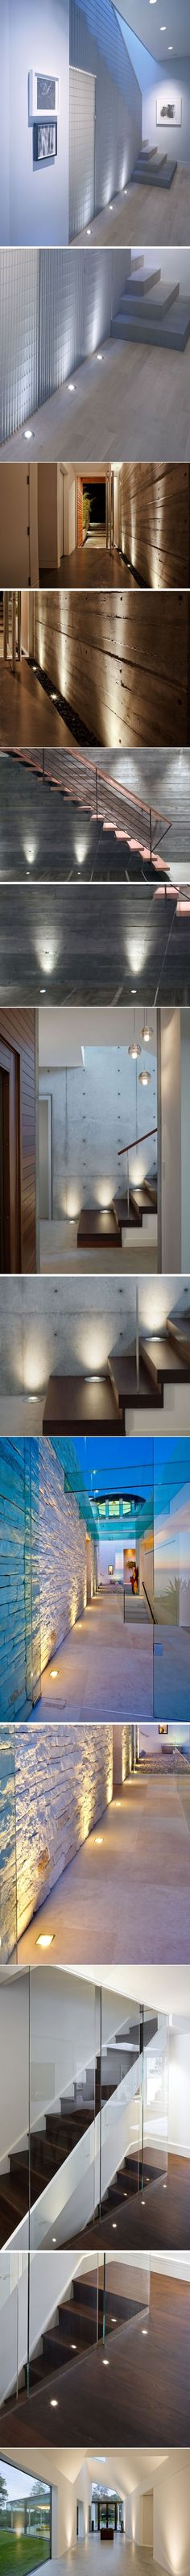 7 Interiors That Use Dramatic Uplighting To Brighten A Space   CONTEMPORIST